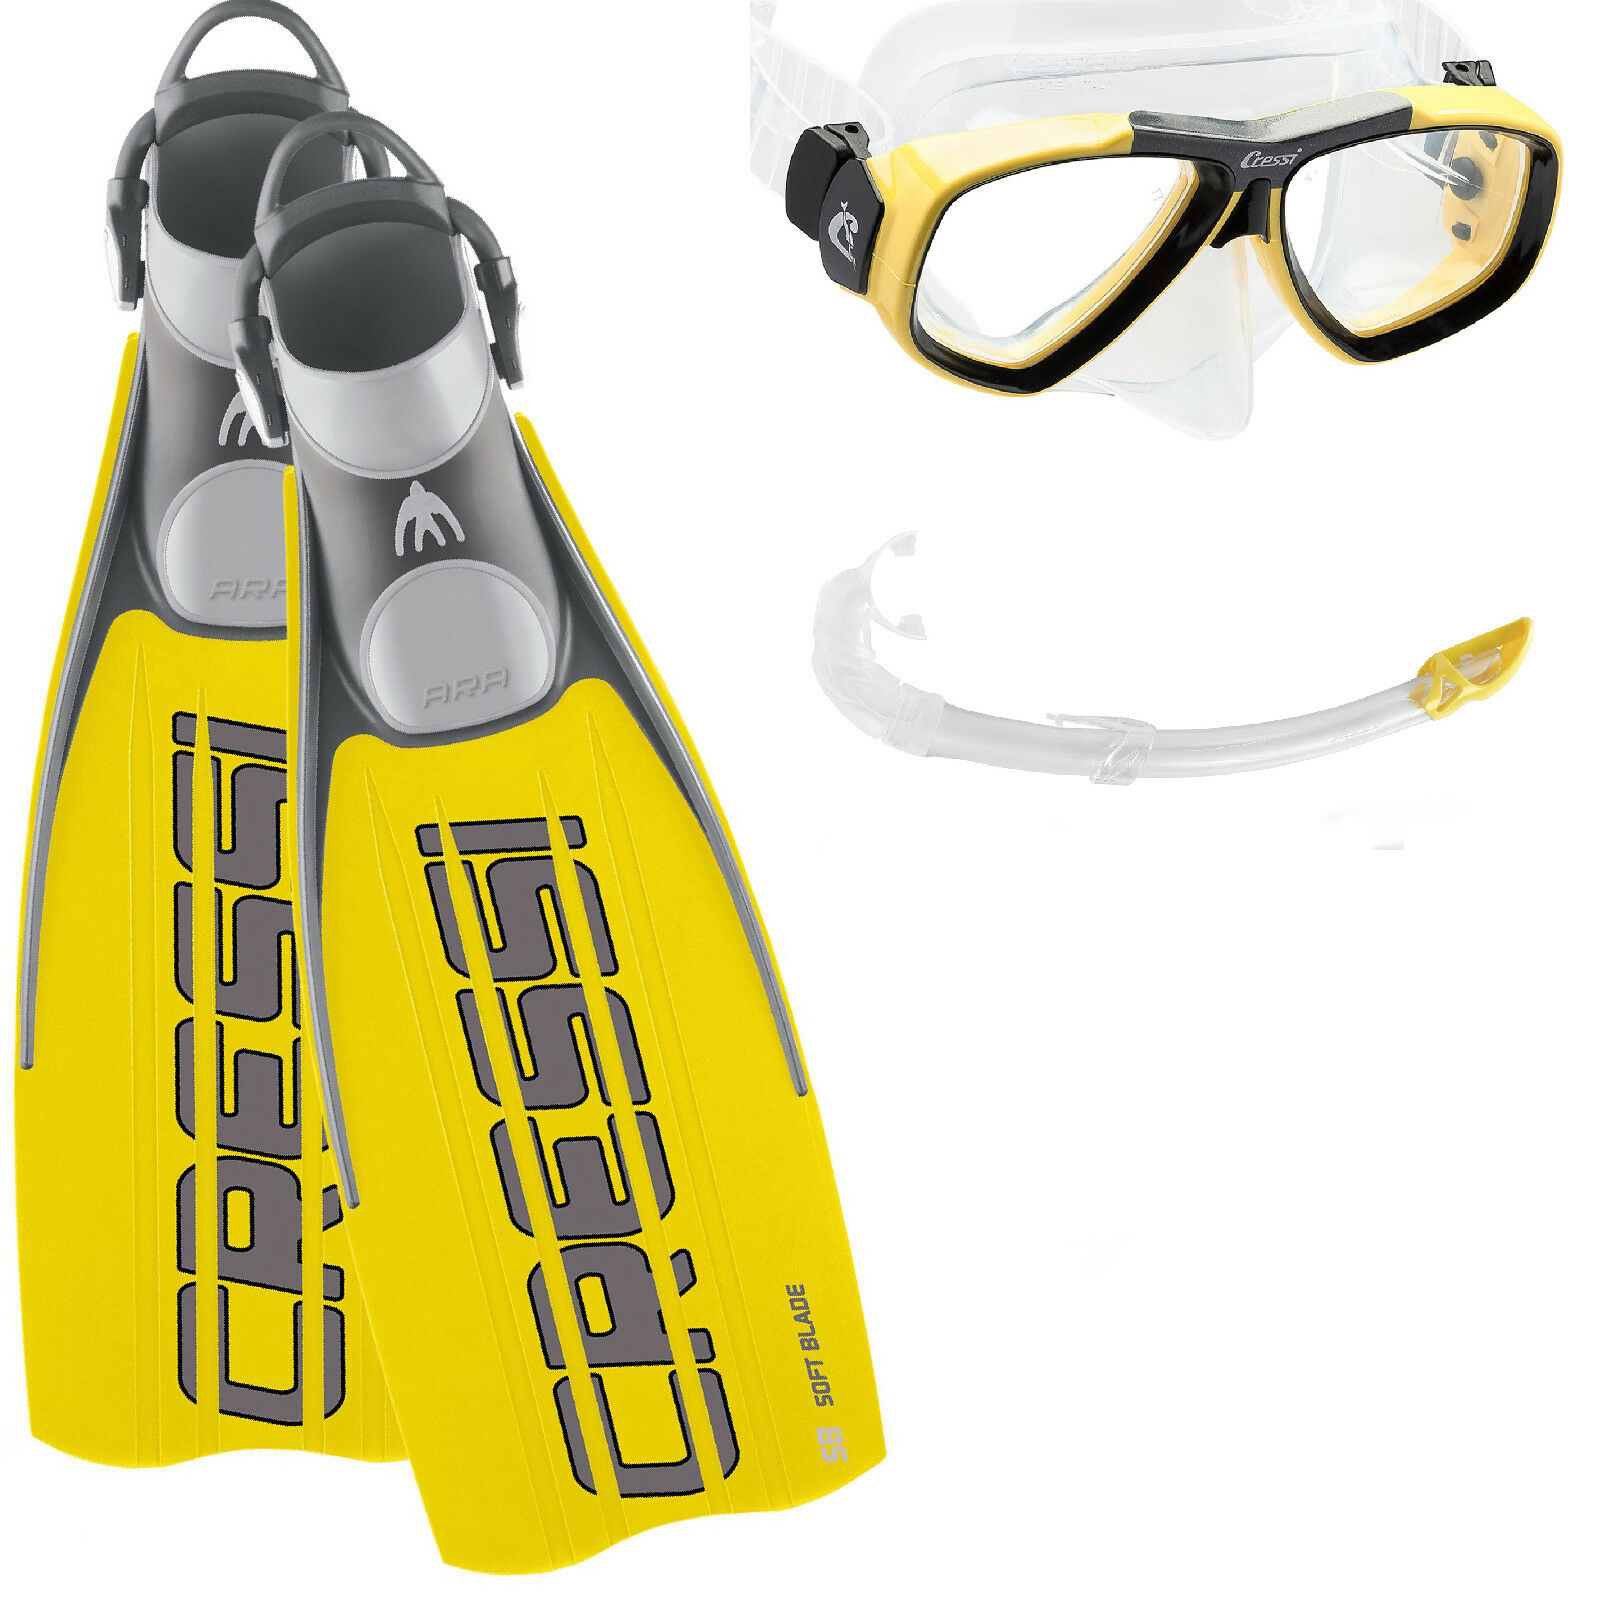 LO3 KIT CRESSI SUB FINS EBS YELLOW  +MASK FOCUS CLEAR SILICONE  YELLOW + SNORKEL